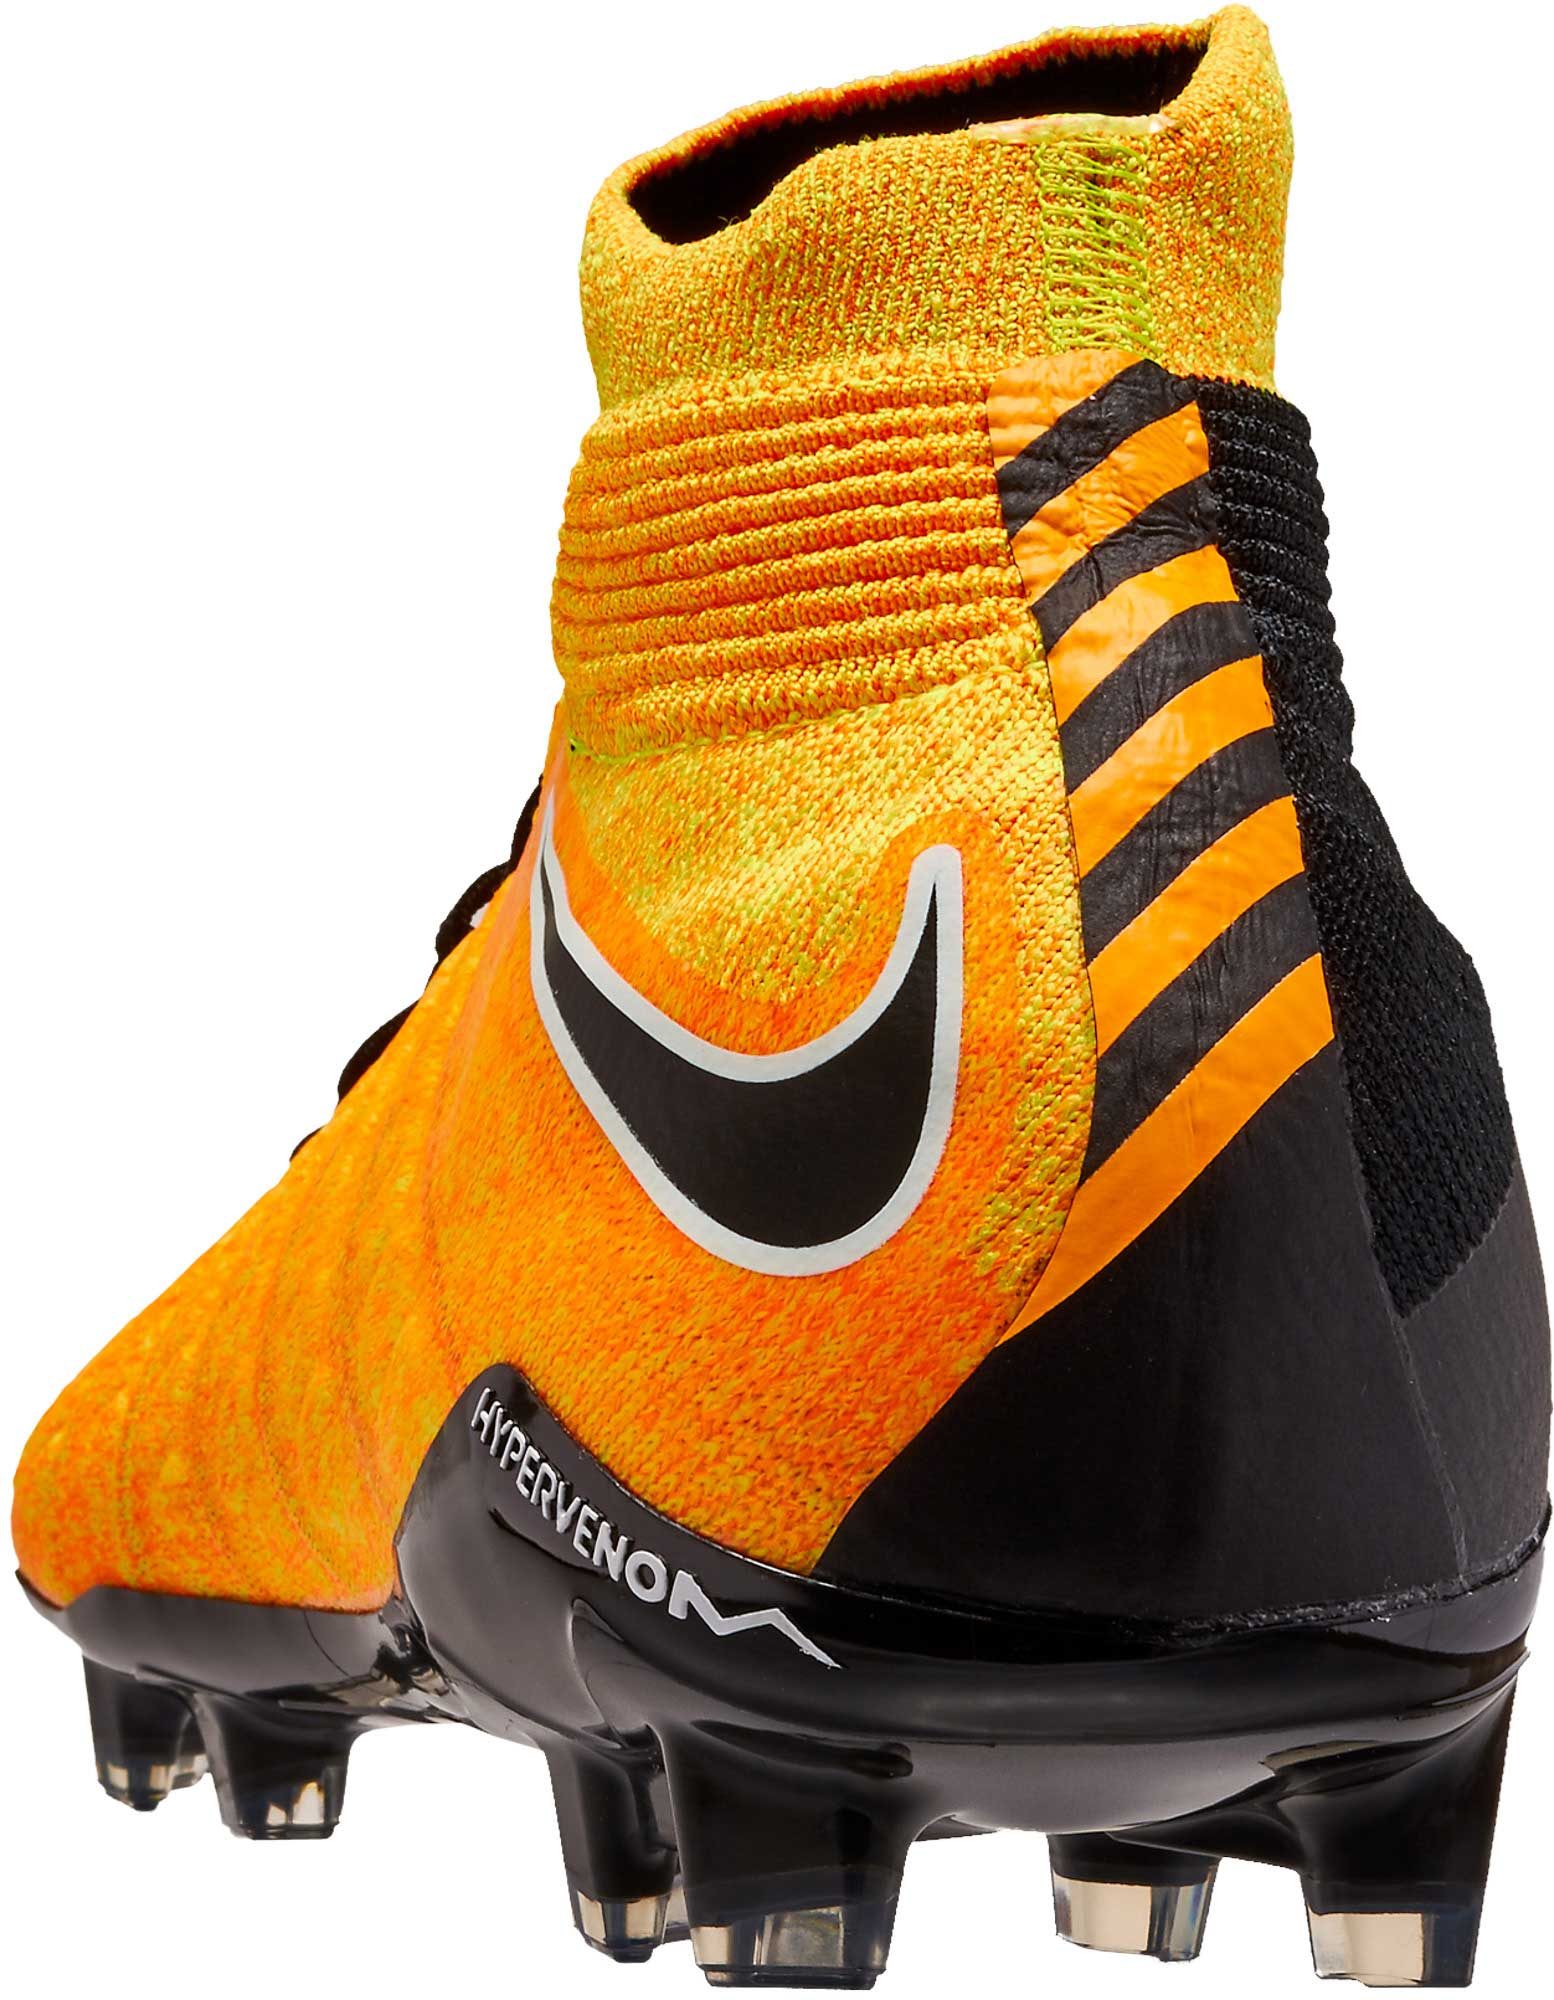 on sale 79a5c 7908c Nike Kids Hypervenom Phantom III DF FG – Laser Orange Black